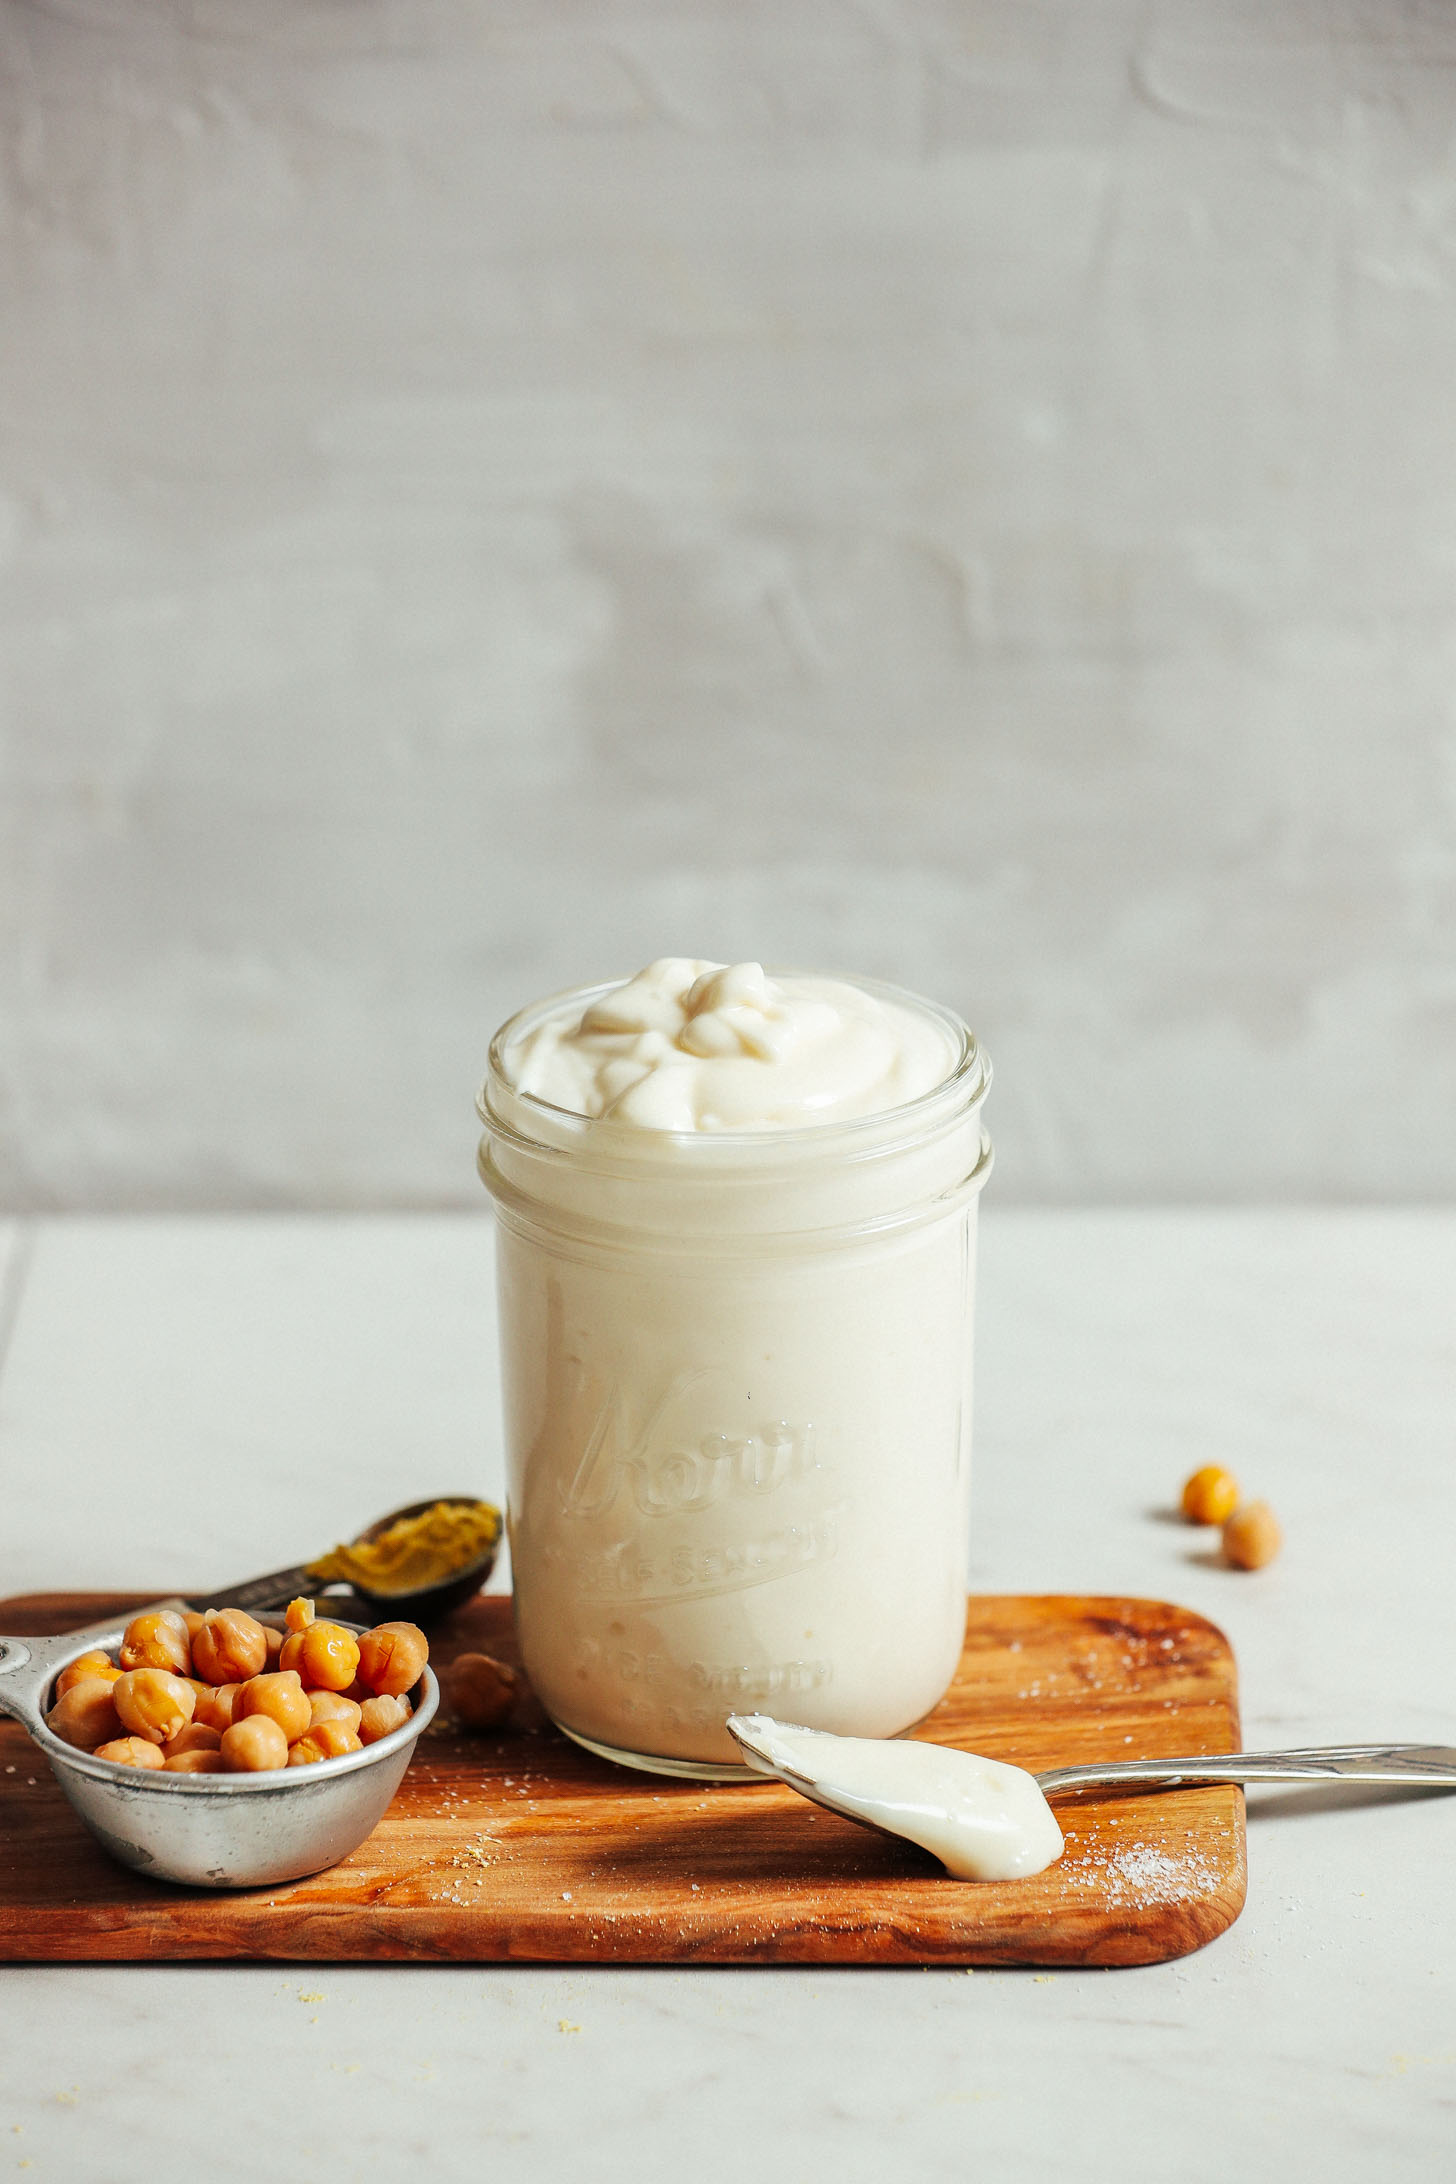 Jar of our homemade vegan mayonnaise recipe